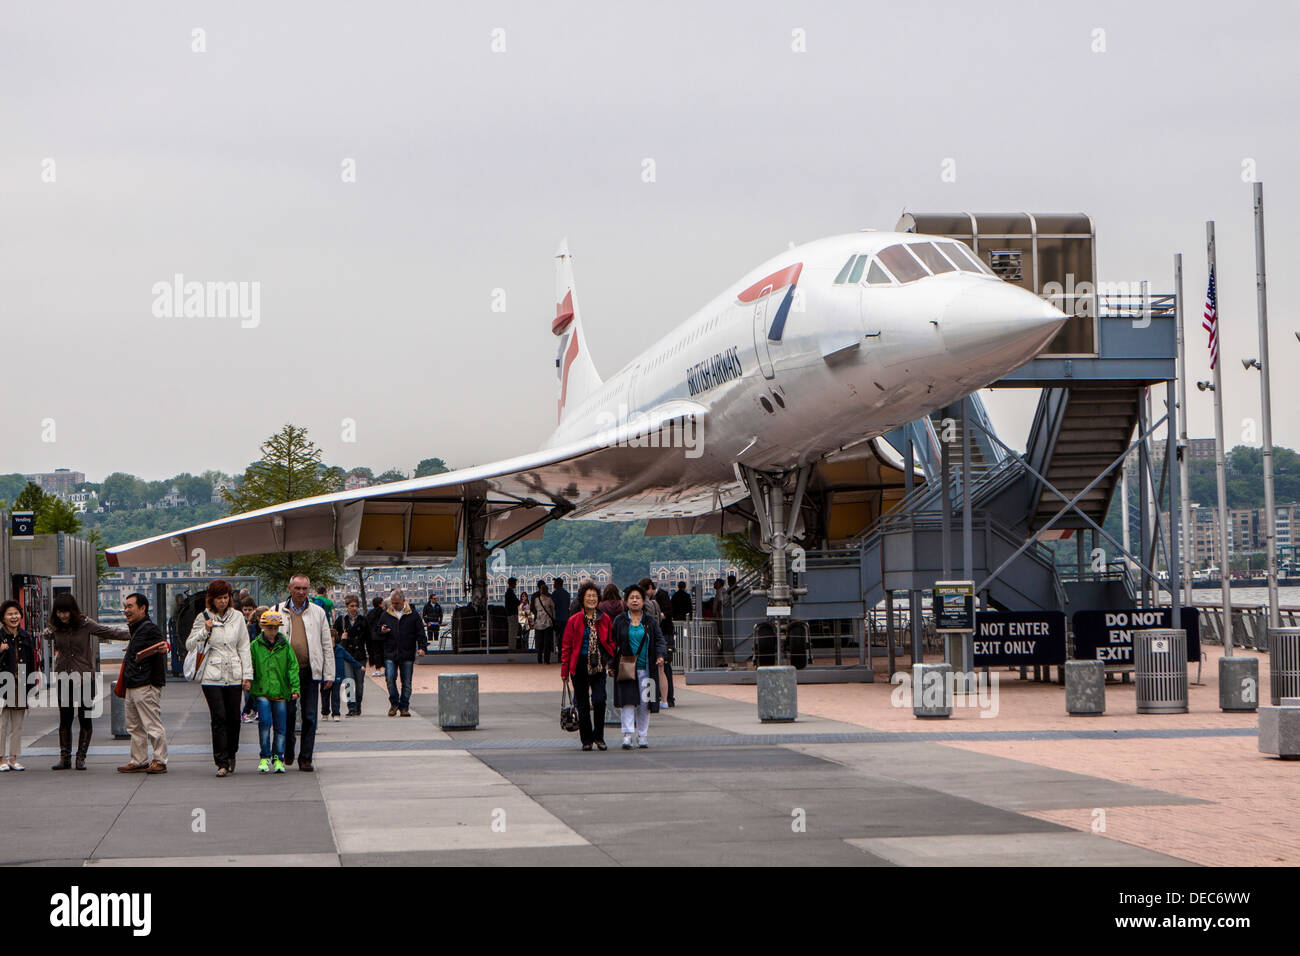 British Airways Concorde supersonic jet at the Intrepid Sea, Air & Space Museum - Stock Image